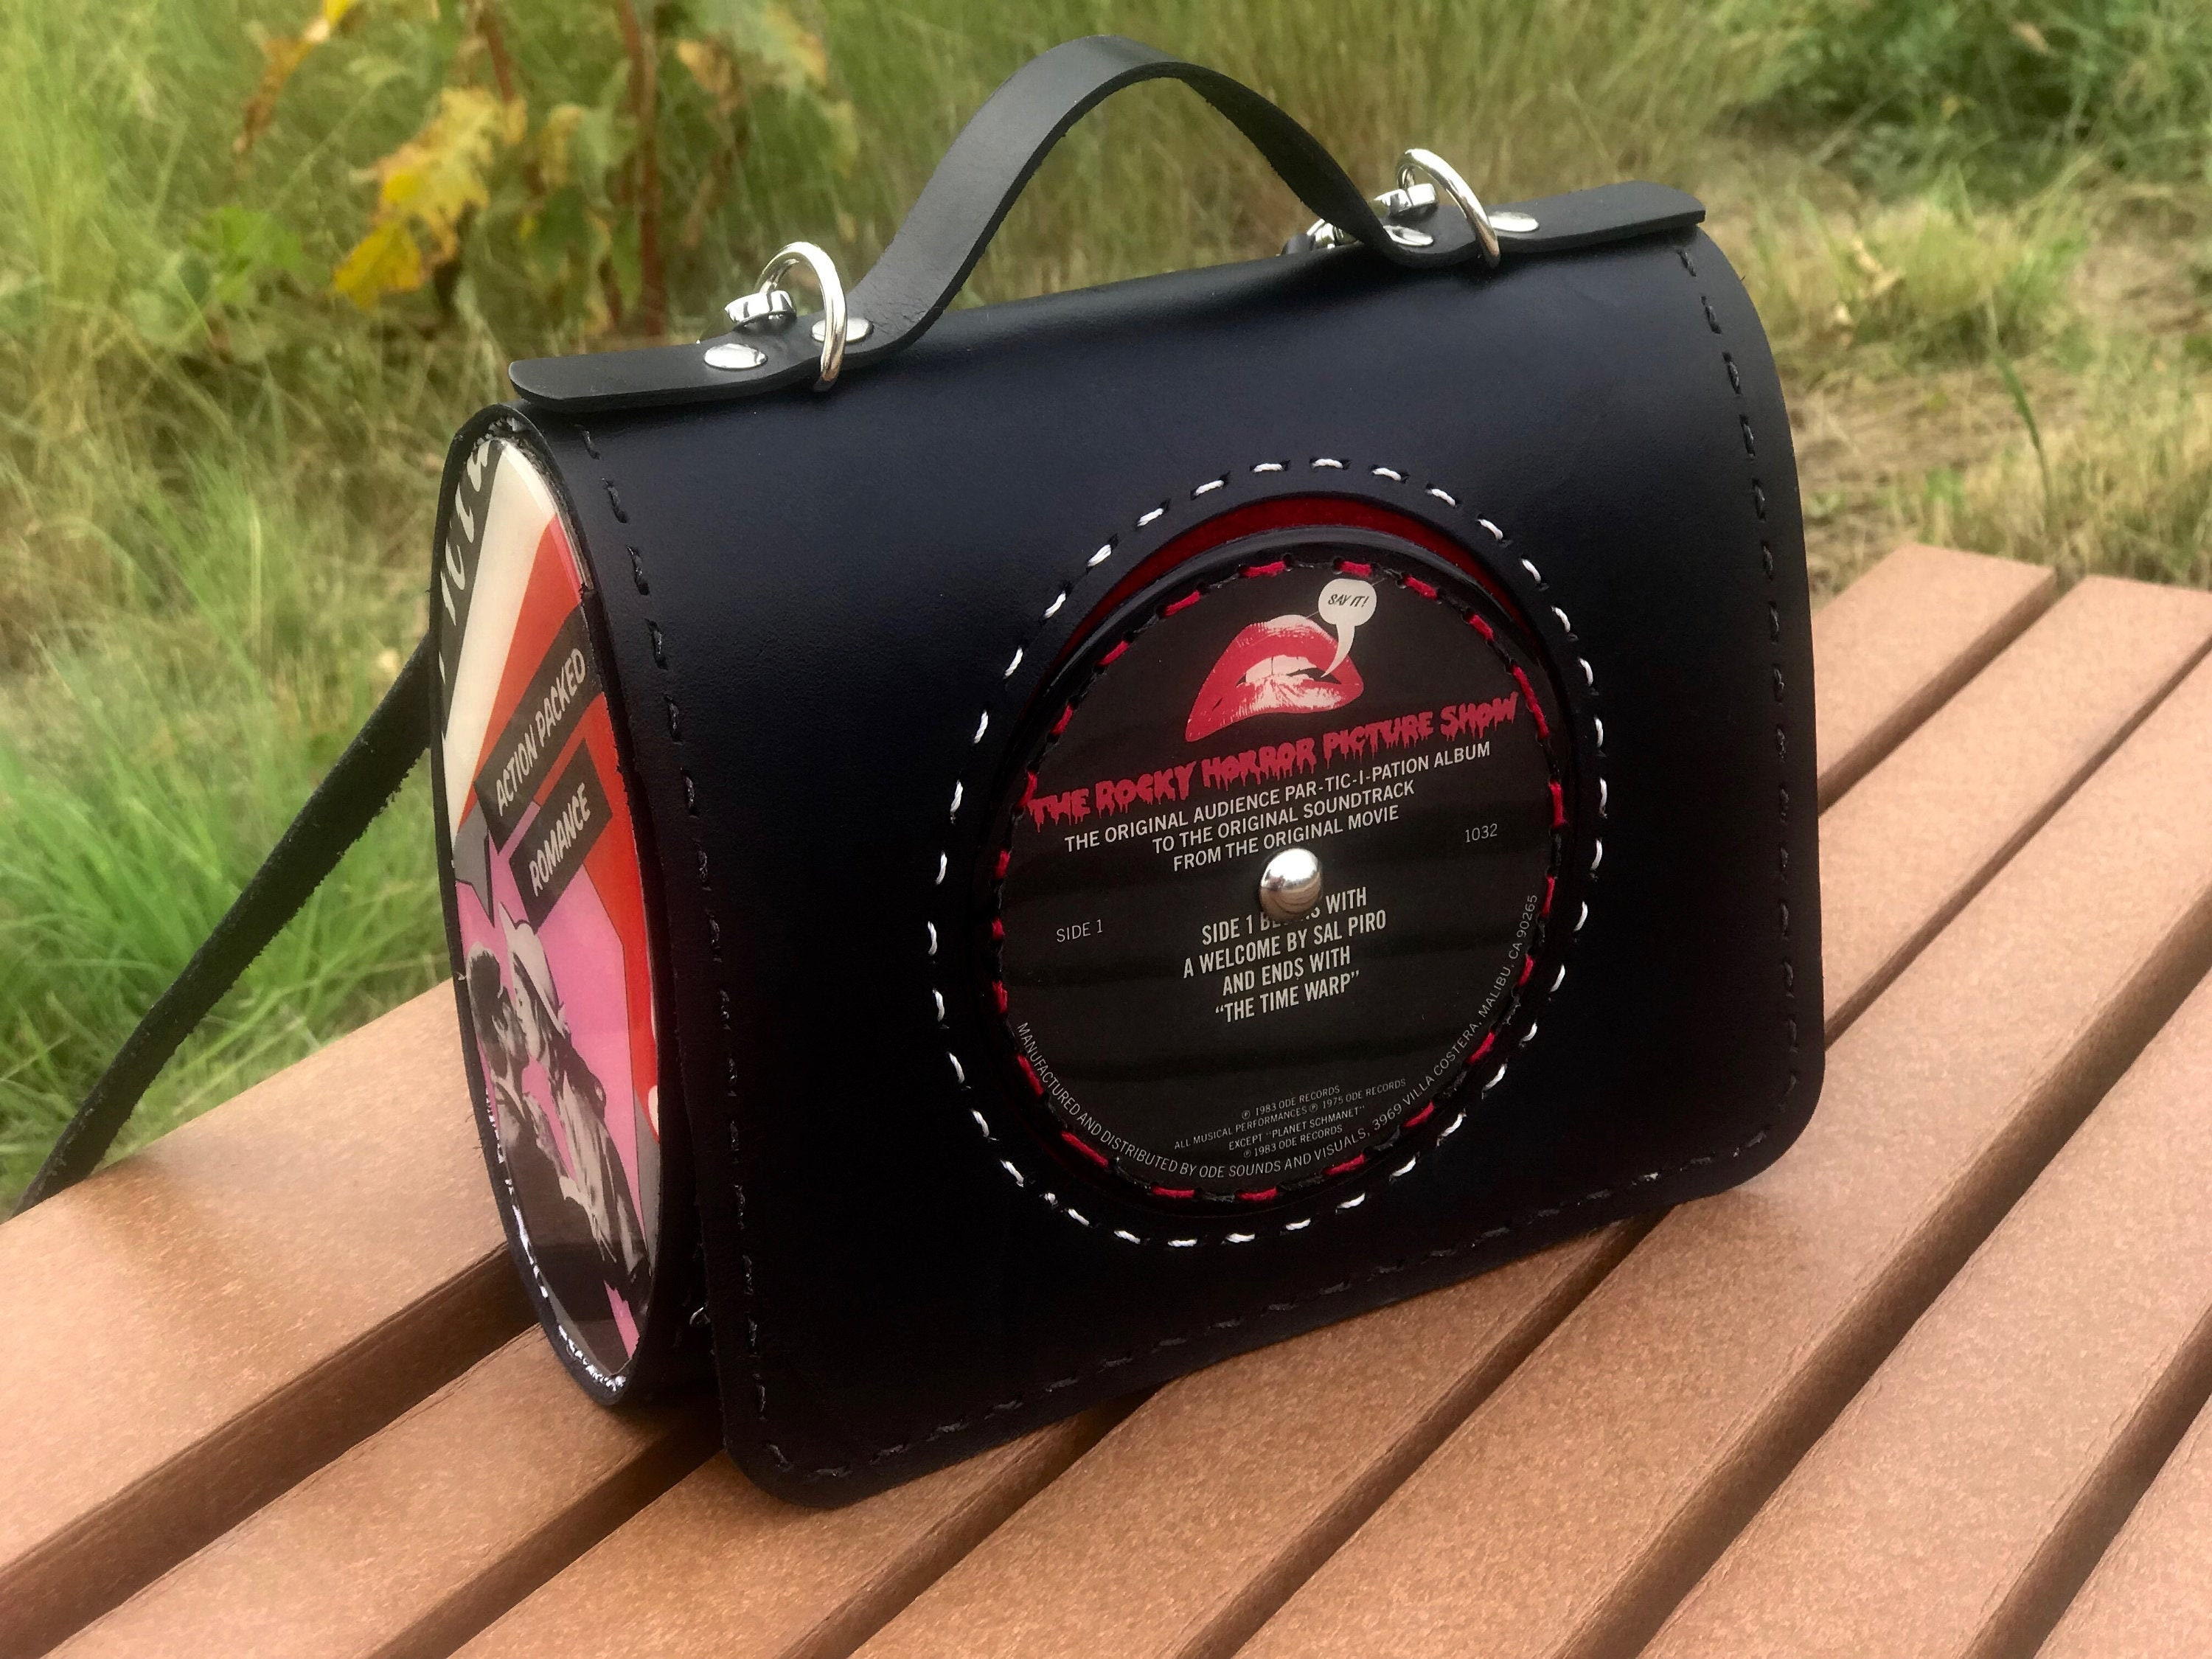 Leather,satchel,crossbody,from,actual,vinyl,record,Rocky,Horror,Picture,Show,Bags_And_Purses,novelty_bag,vindicated_vinyl,recycled_record,vintage_recycle,Clutch,musical_fashion,music_lover_gift,broadway_musical,rocky_horror,soundtrack,time_warp,Halloween_bag,Vinyl record,rivets,resin,eyelets,leather,fabric